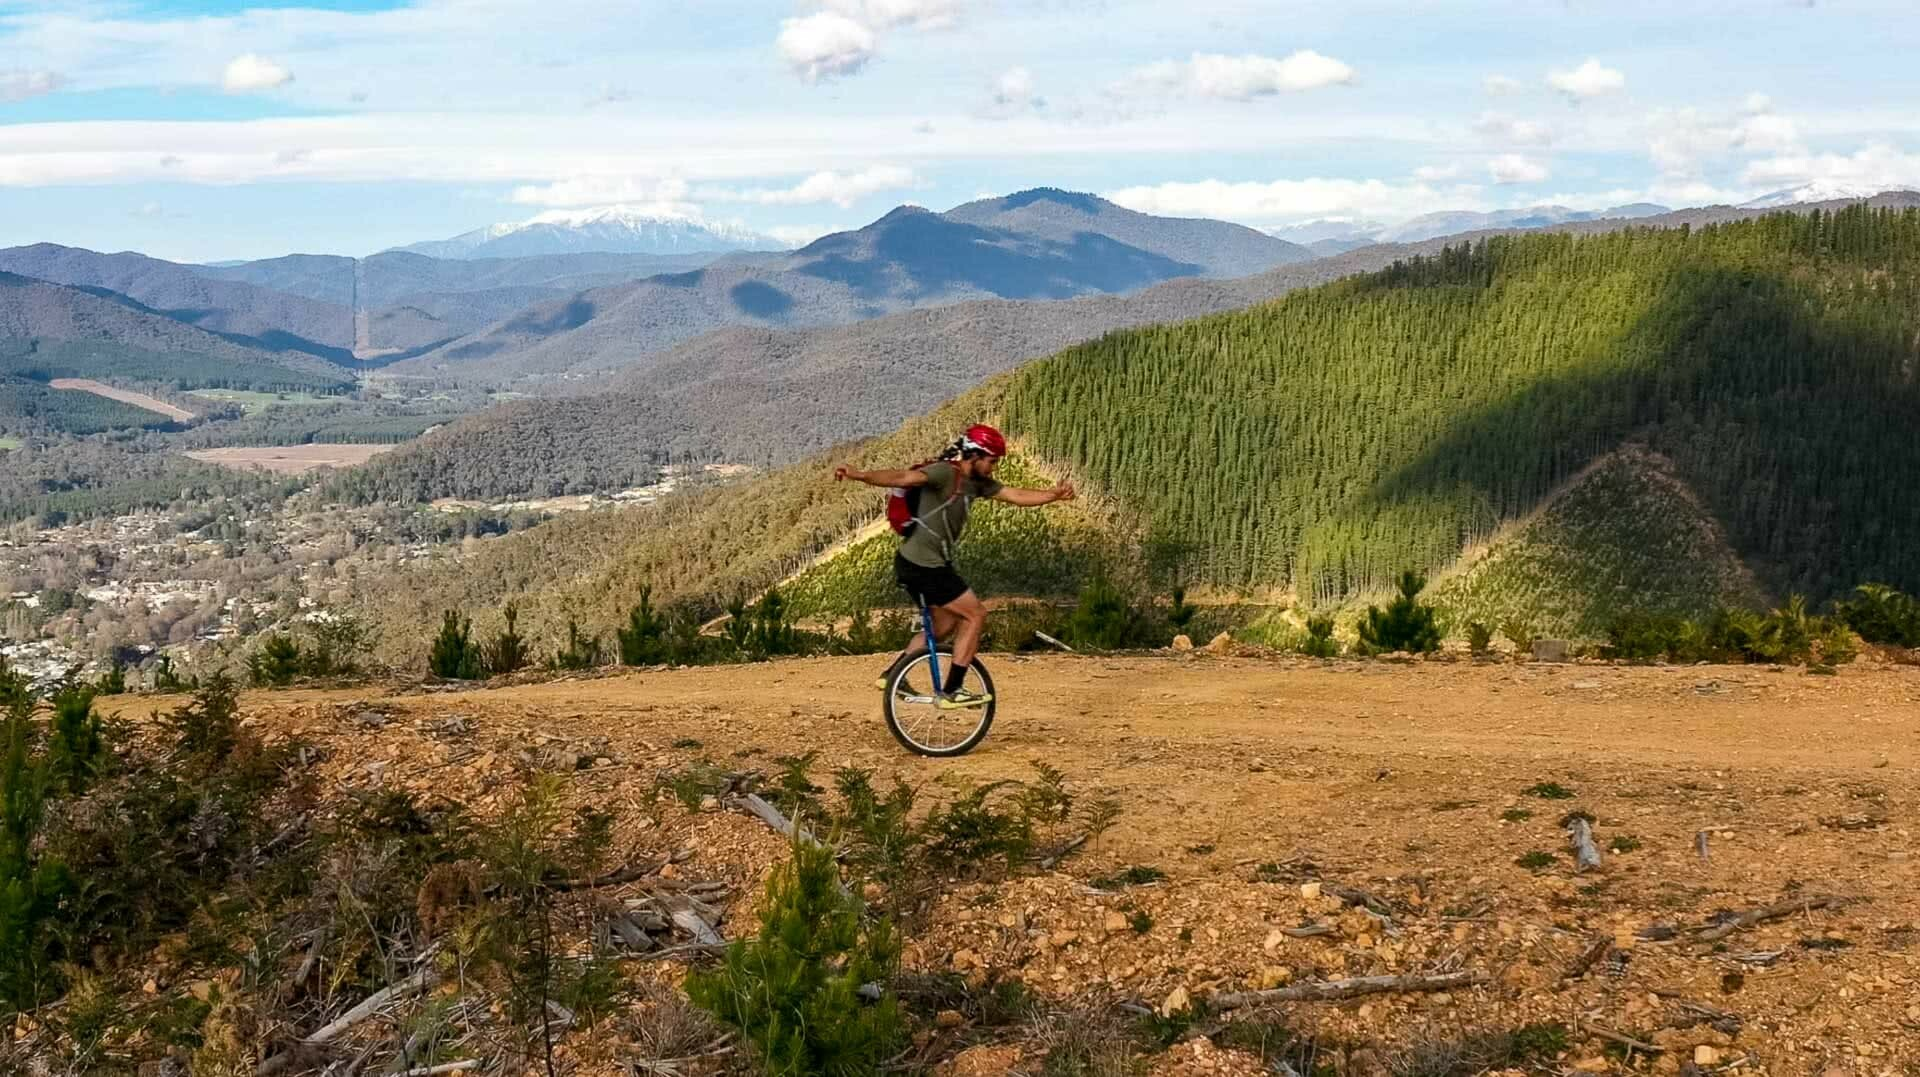 Stan Meissner - Lockdown Adventures - Day 26 Offroad Unicycling, Stan Meissner Has Done A Lockdown Adventure Every Day In Victoria,